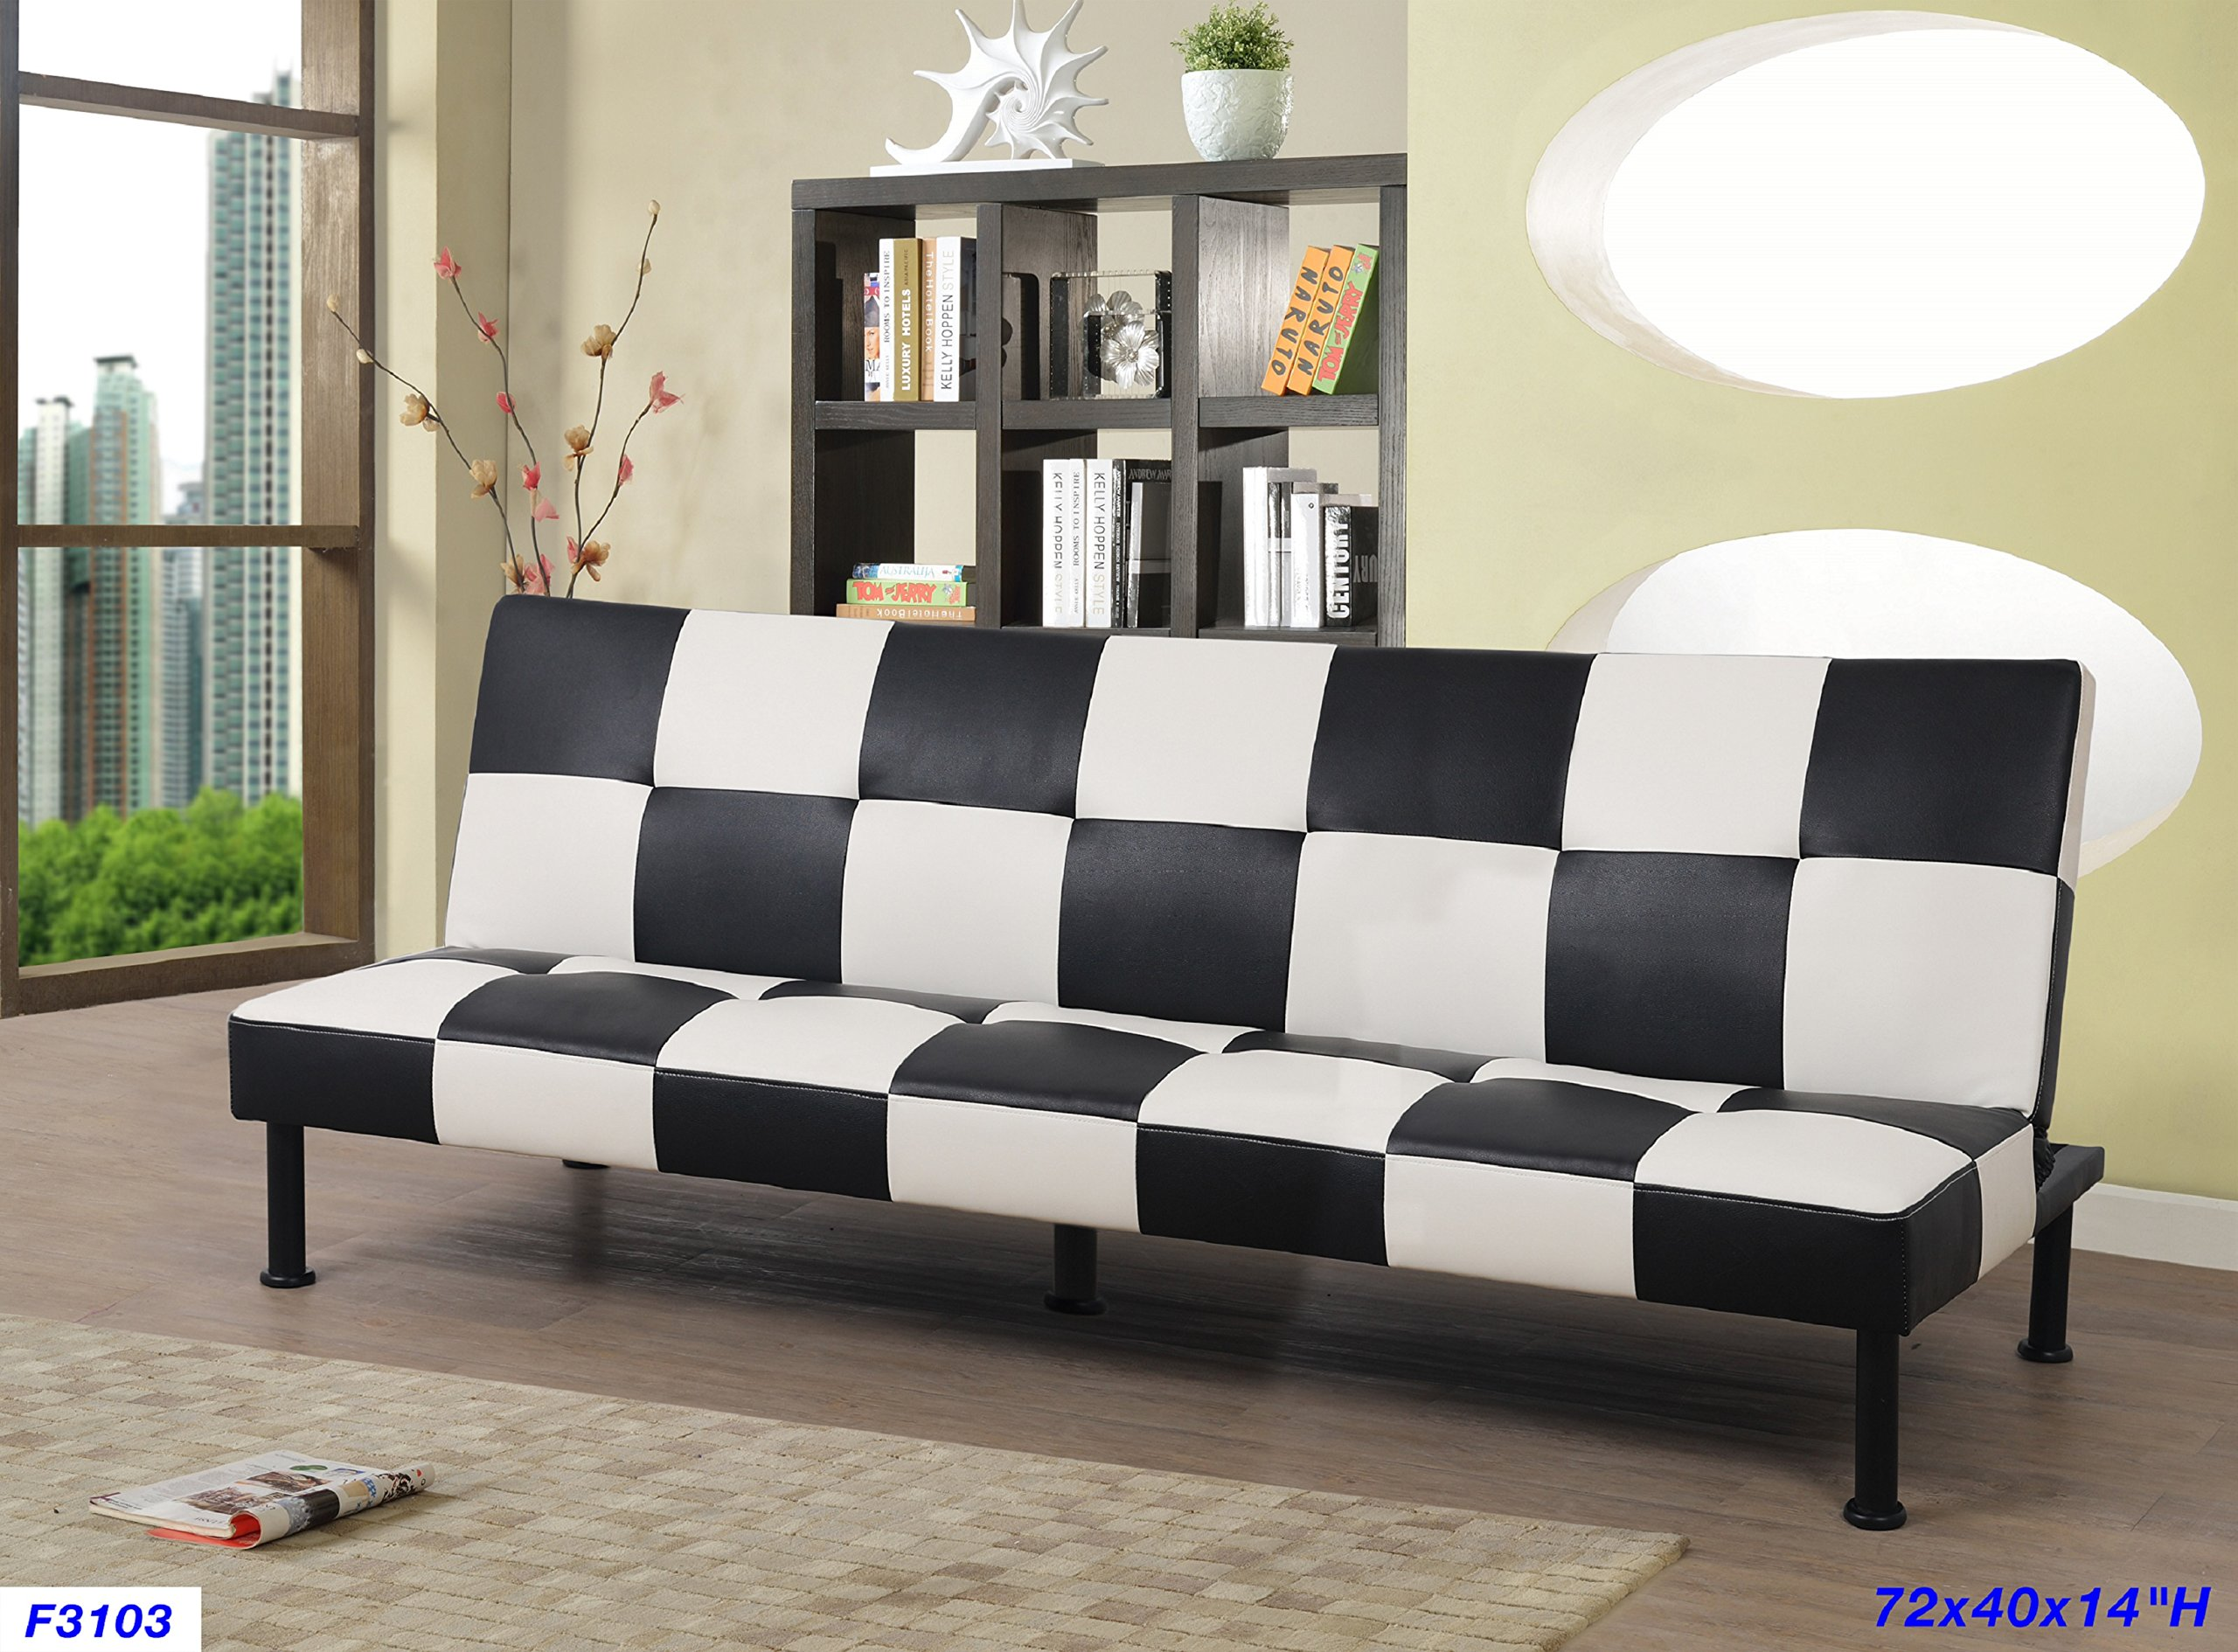 Beverly Furniture F3103 Futon Convertible Sofa Black/White by Beverly Furniture